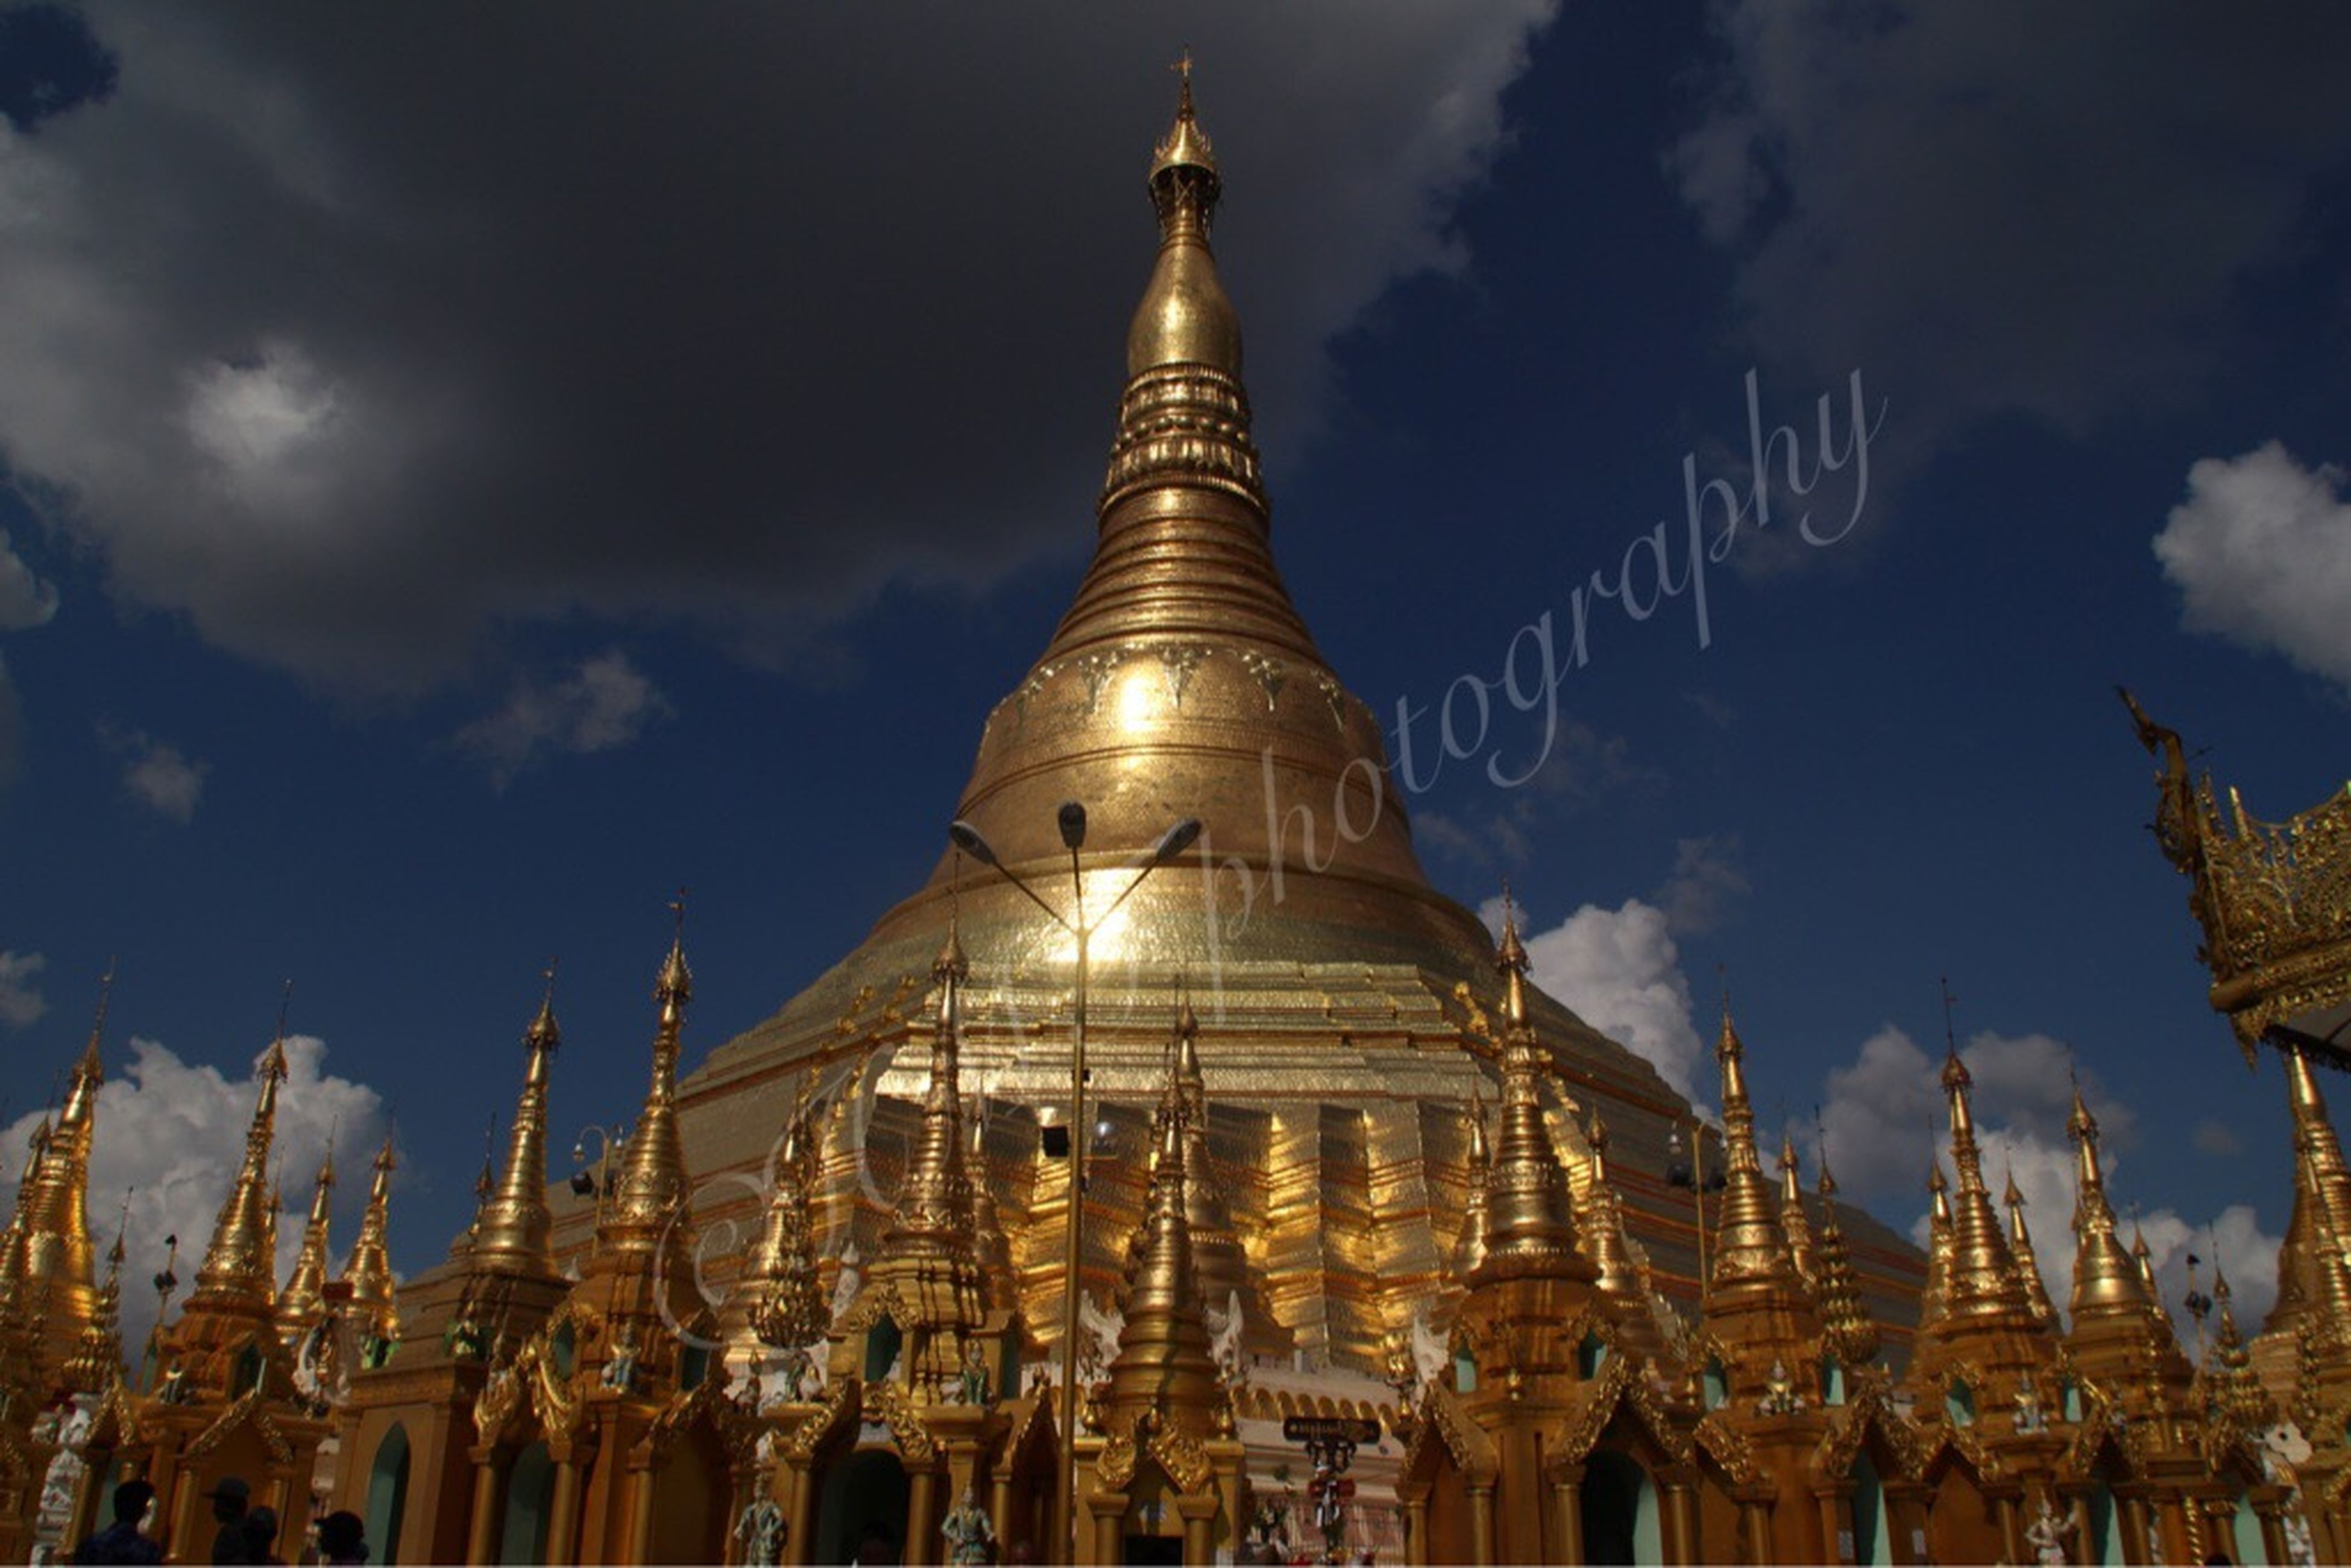 architecture, low angle view, sky, built structure, building exterior, religion, place of worship, famous place, spirituality, travel destinations, cloud - sky, travel, temple - building, tourism, international landmark, history, cloud, outdoors, gold colored